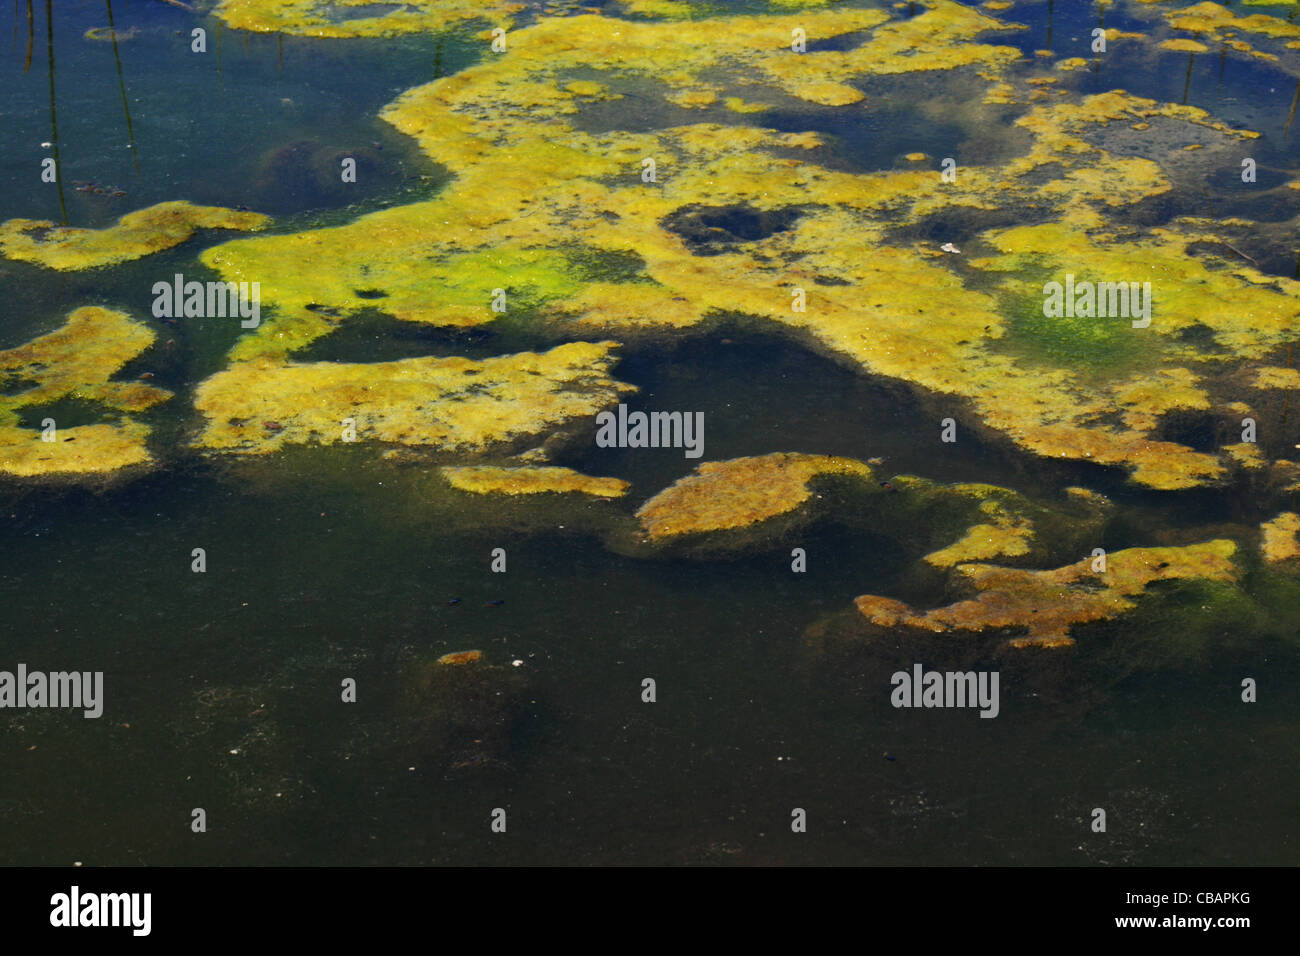 green algae mat grows on a pond surface - Stock Image